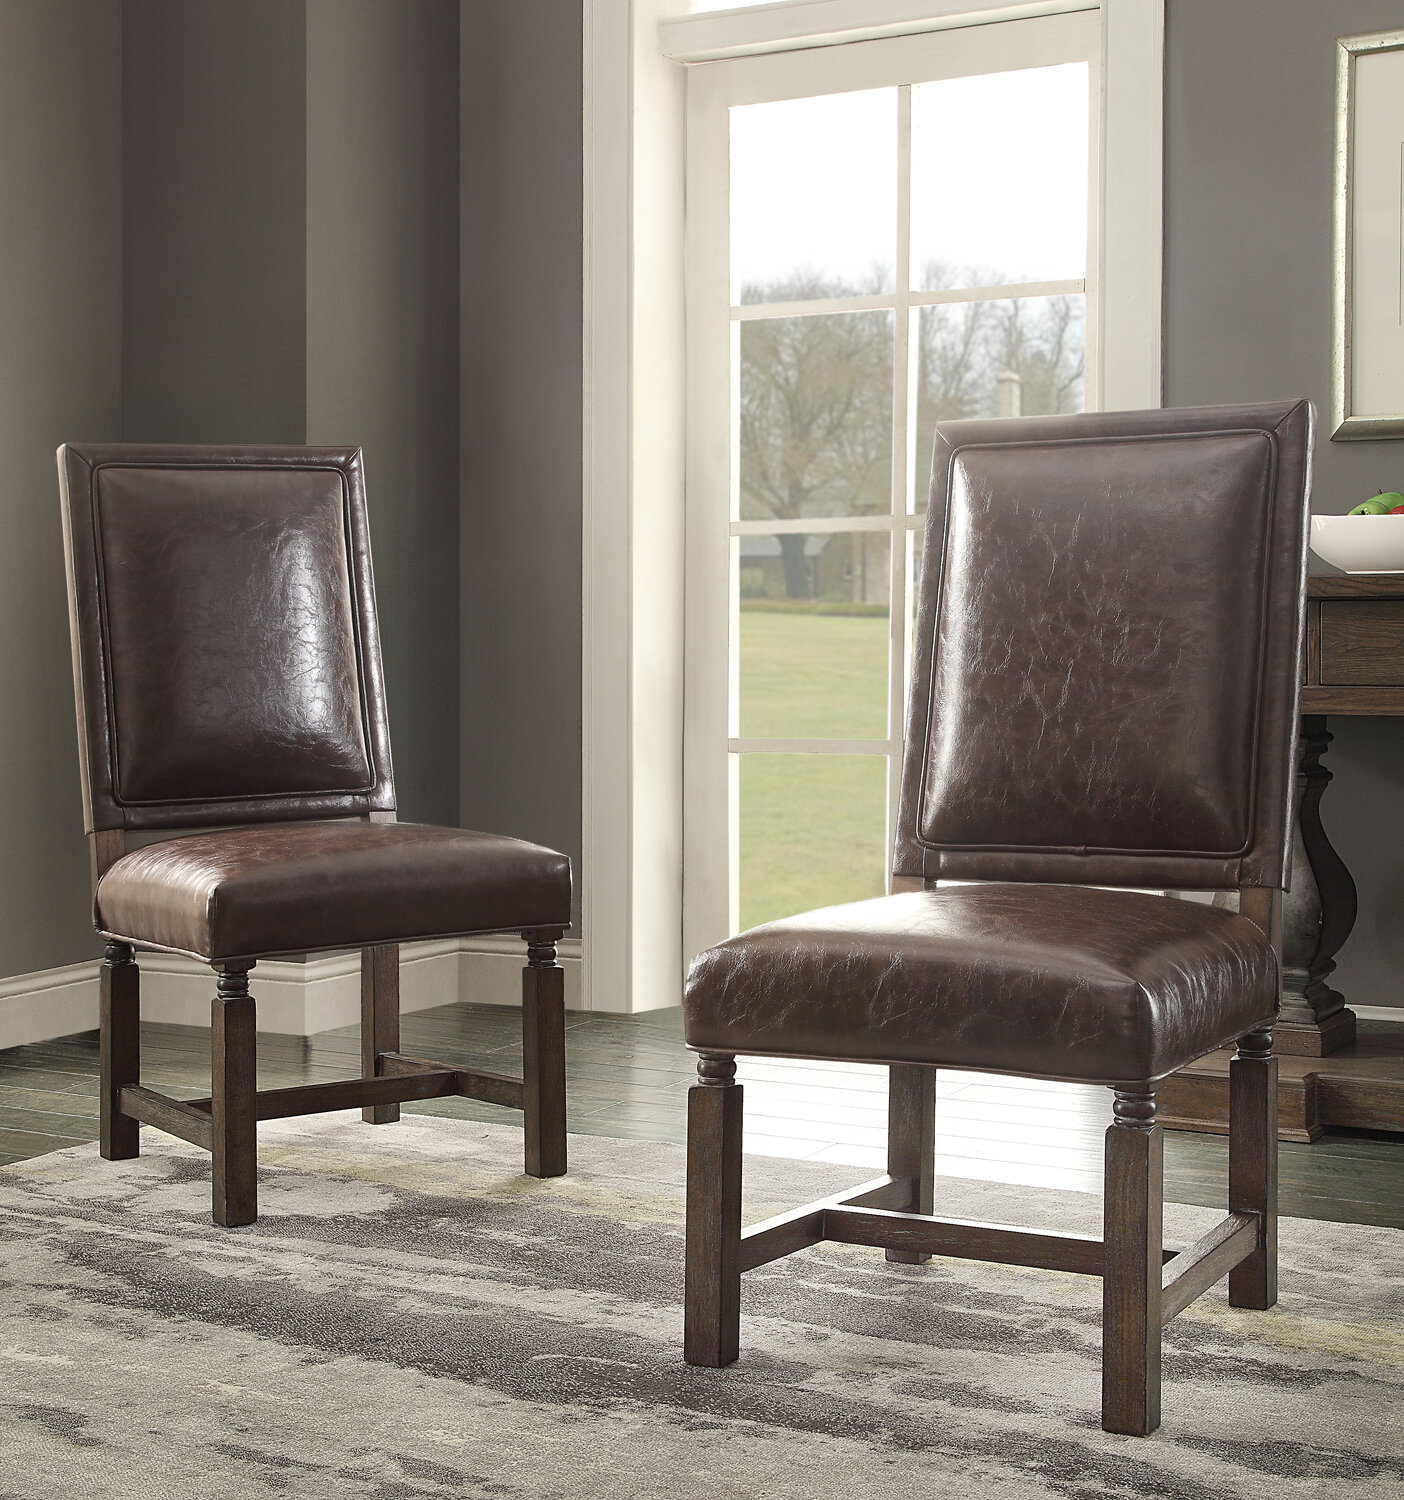 Hazelwood home distressed upholstered dining chair wayfair